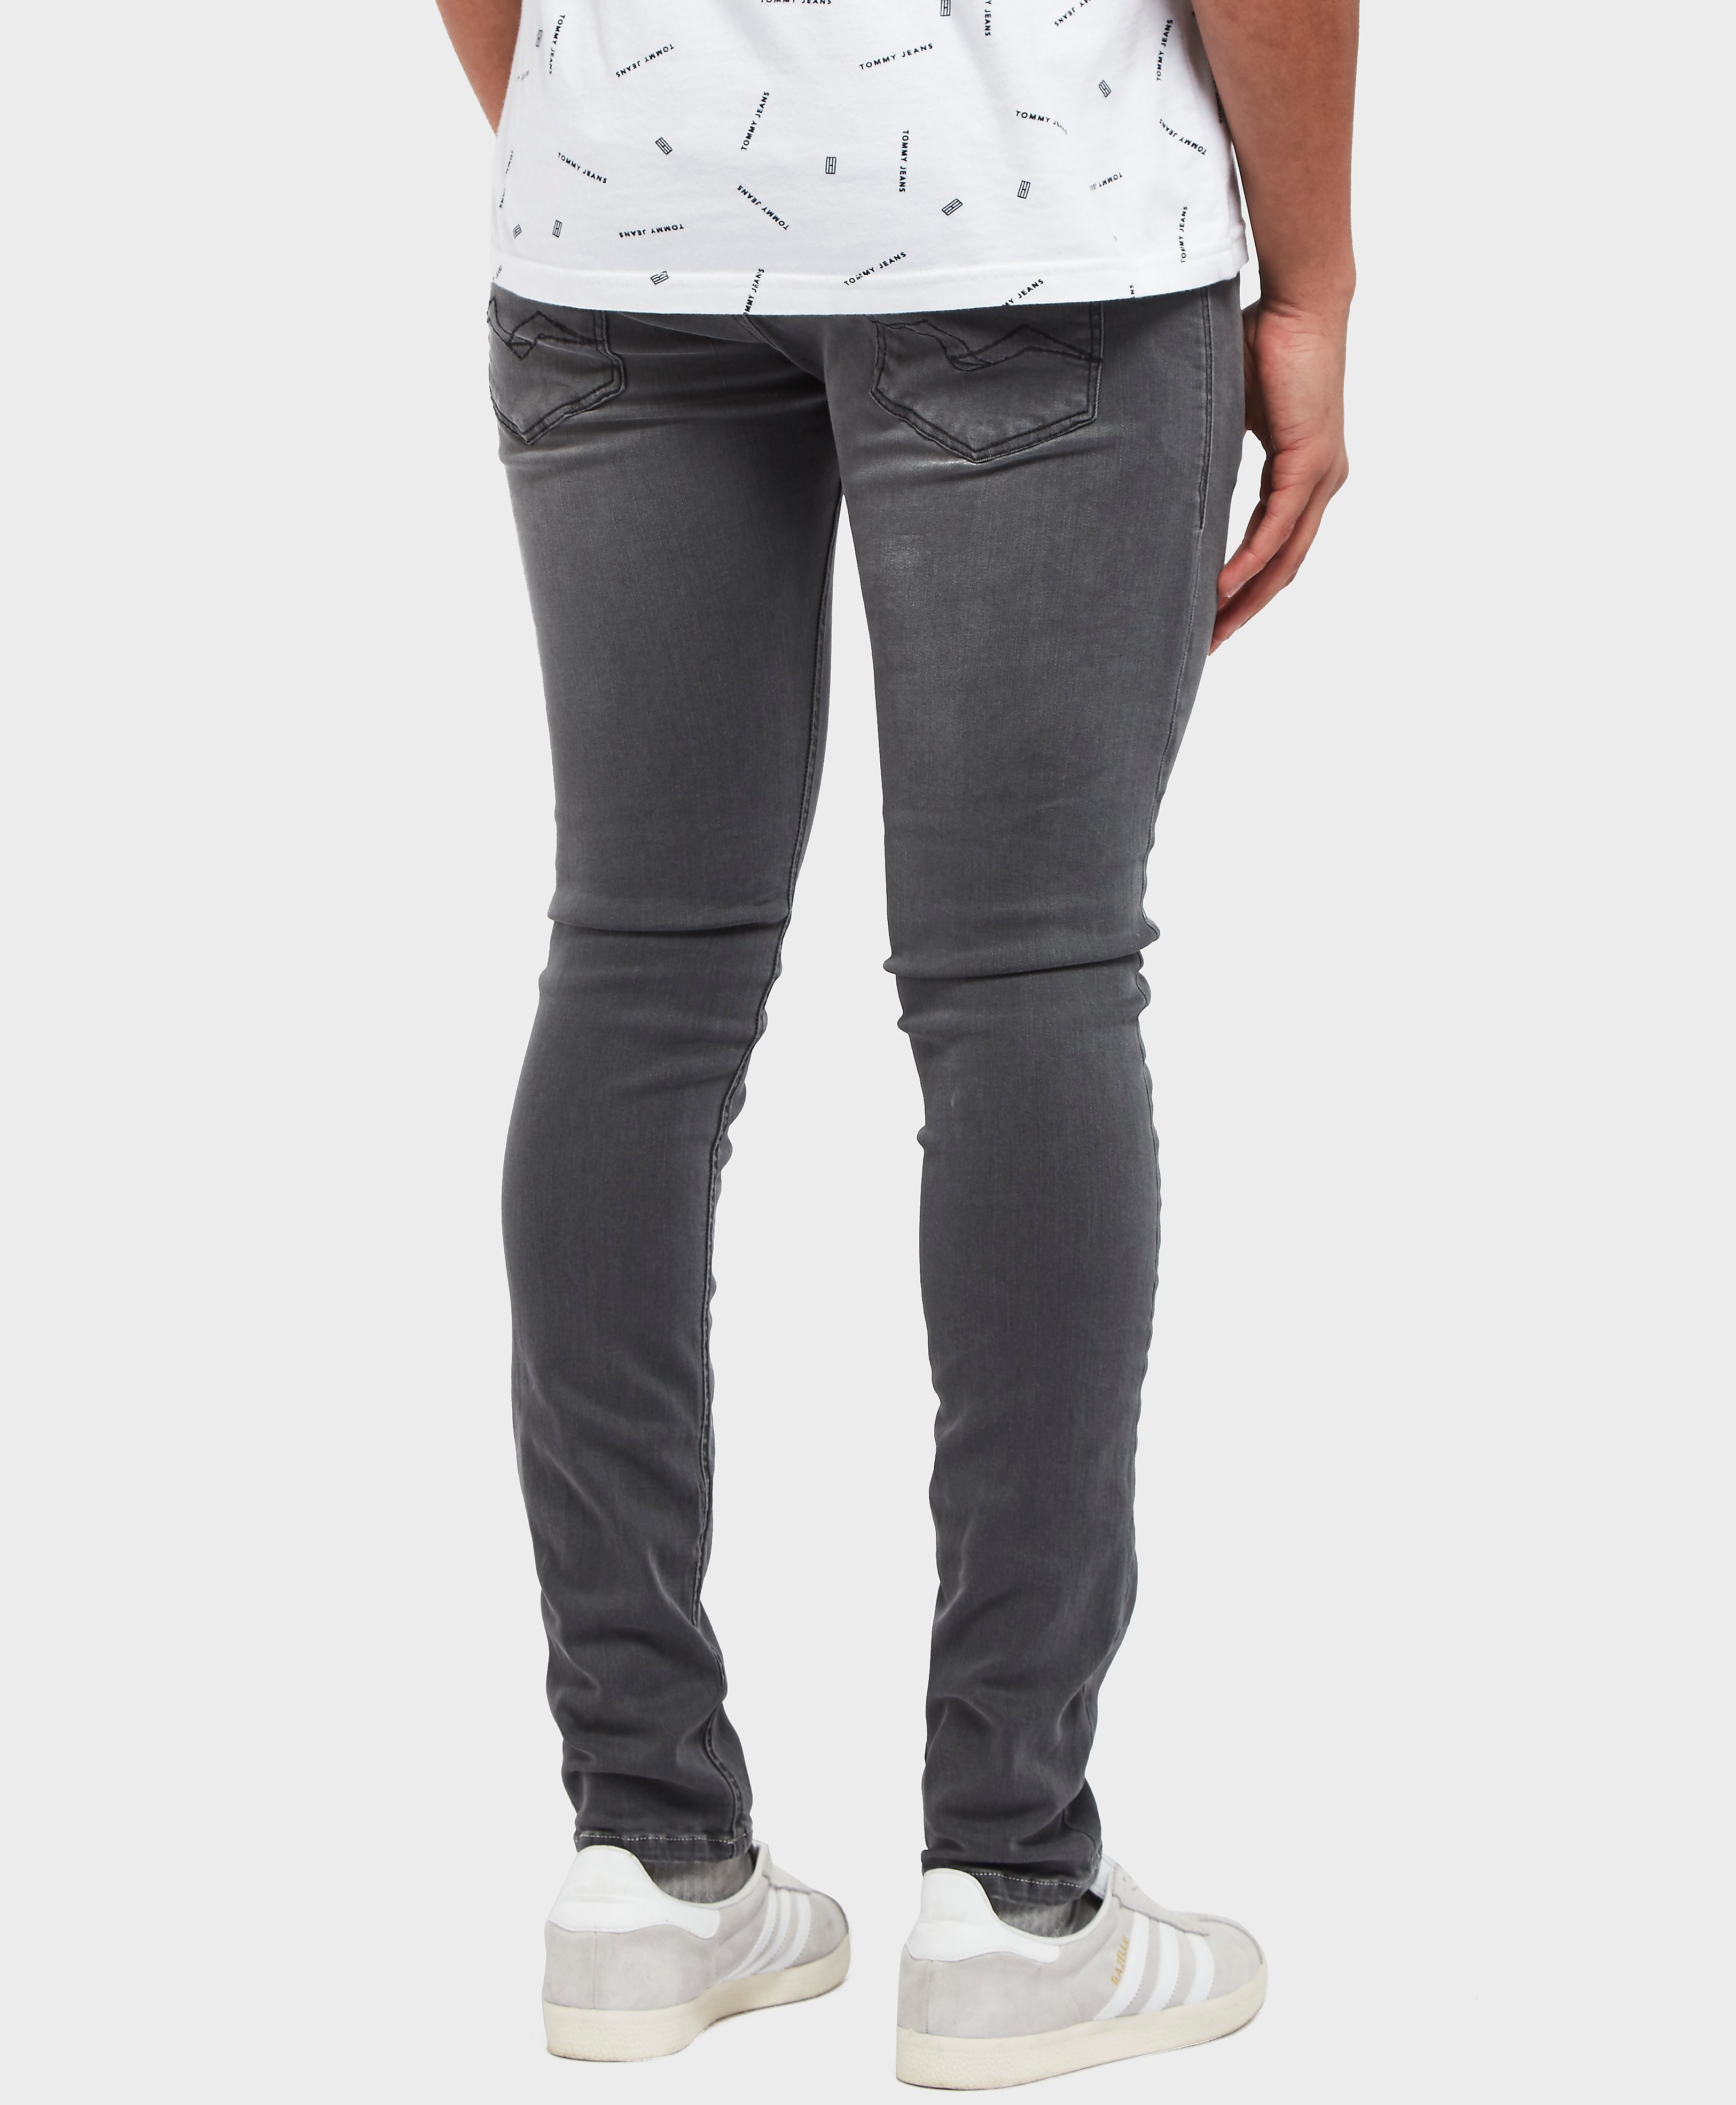 Replay Jondrill Skinny Jeans